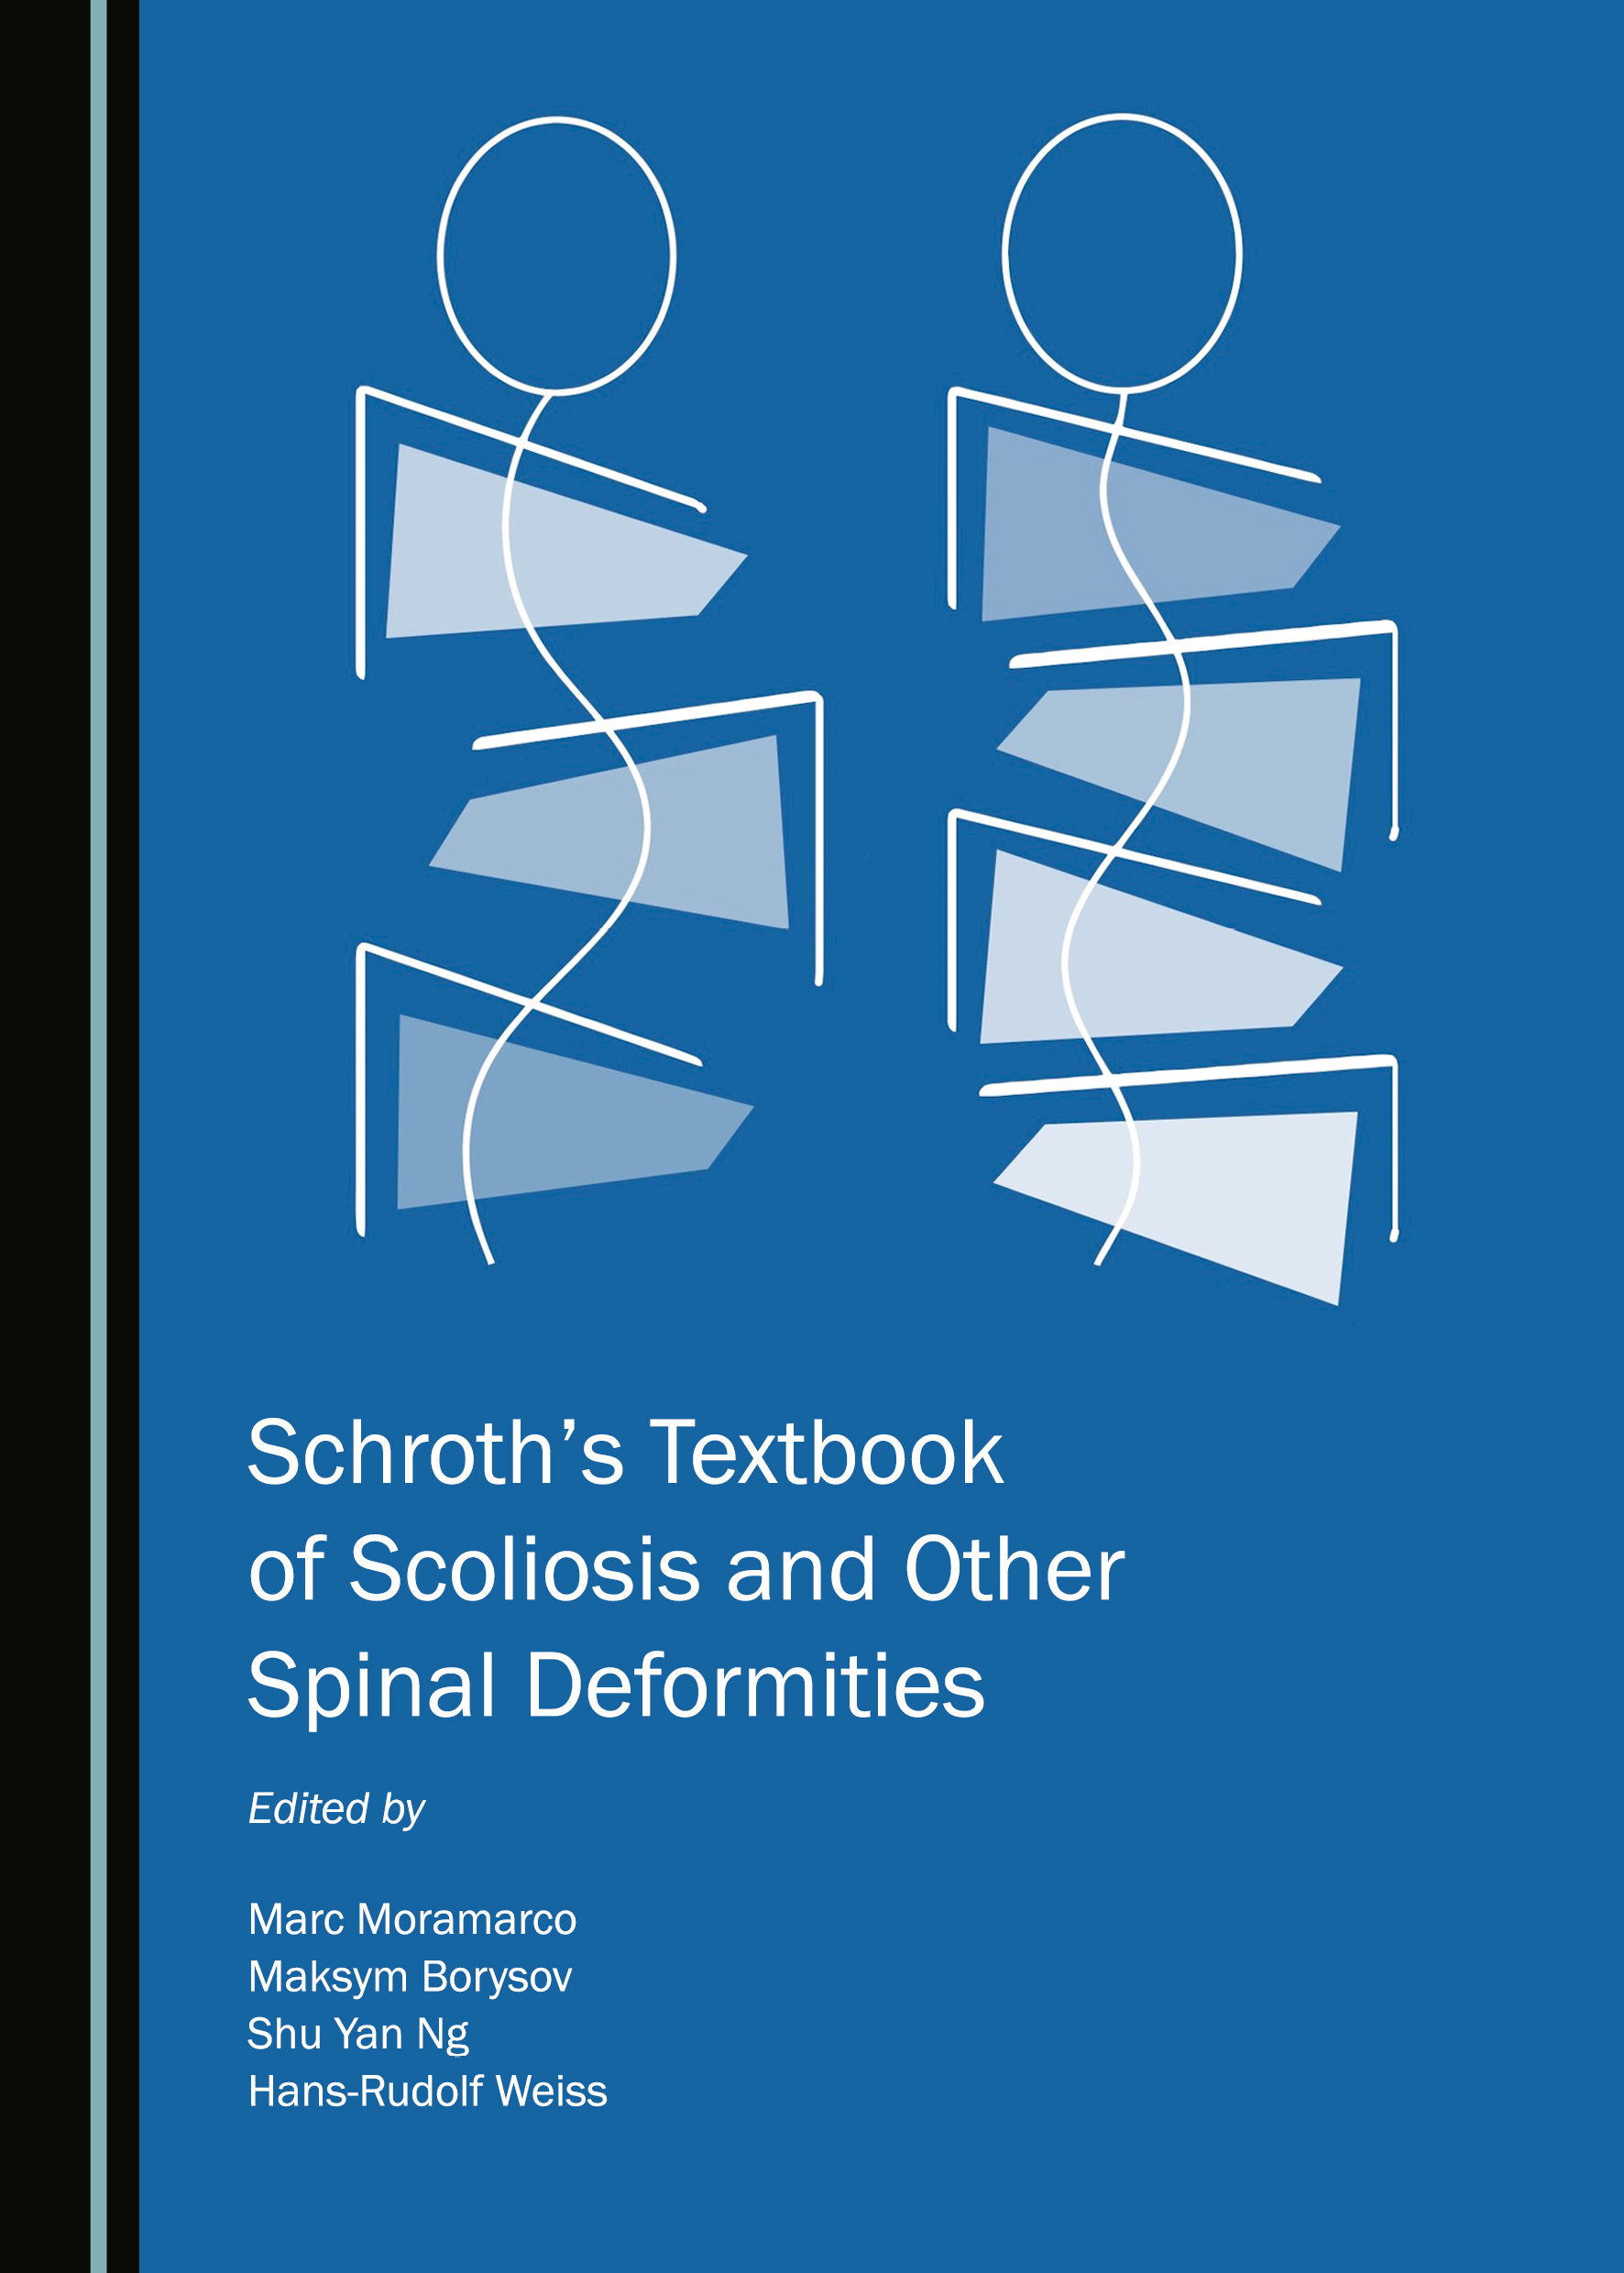 Schroth's Textbook of Scoliosis and Other Spinal Deformities